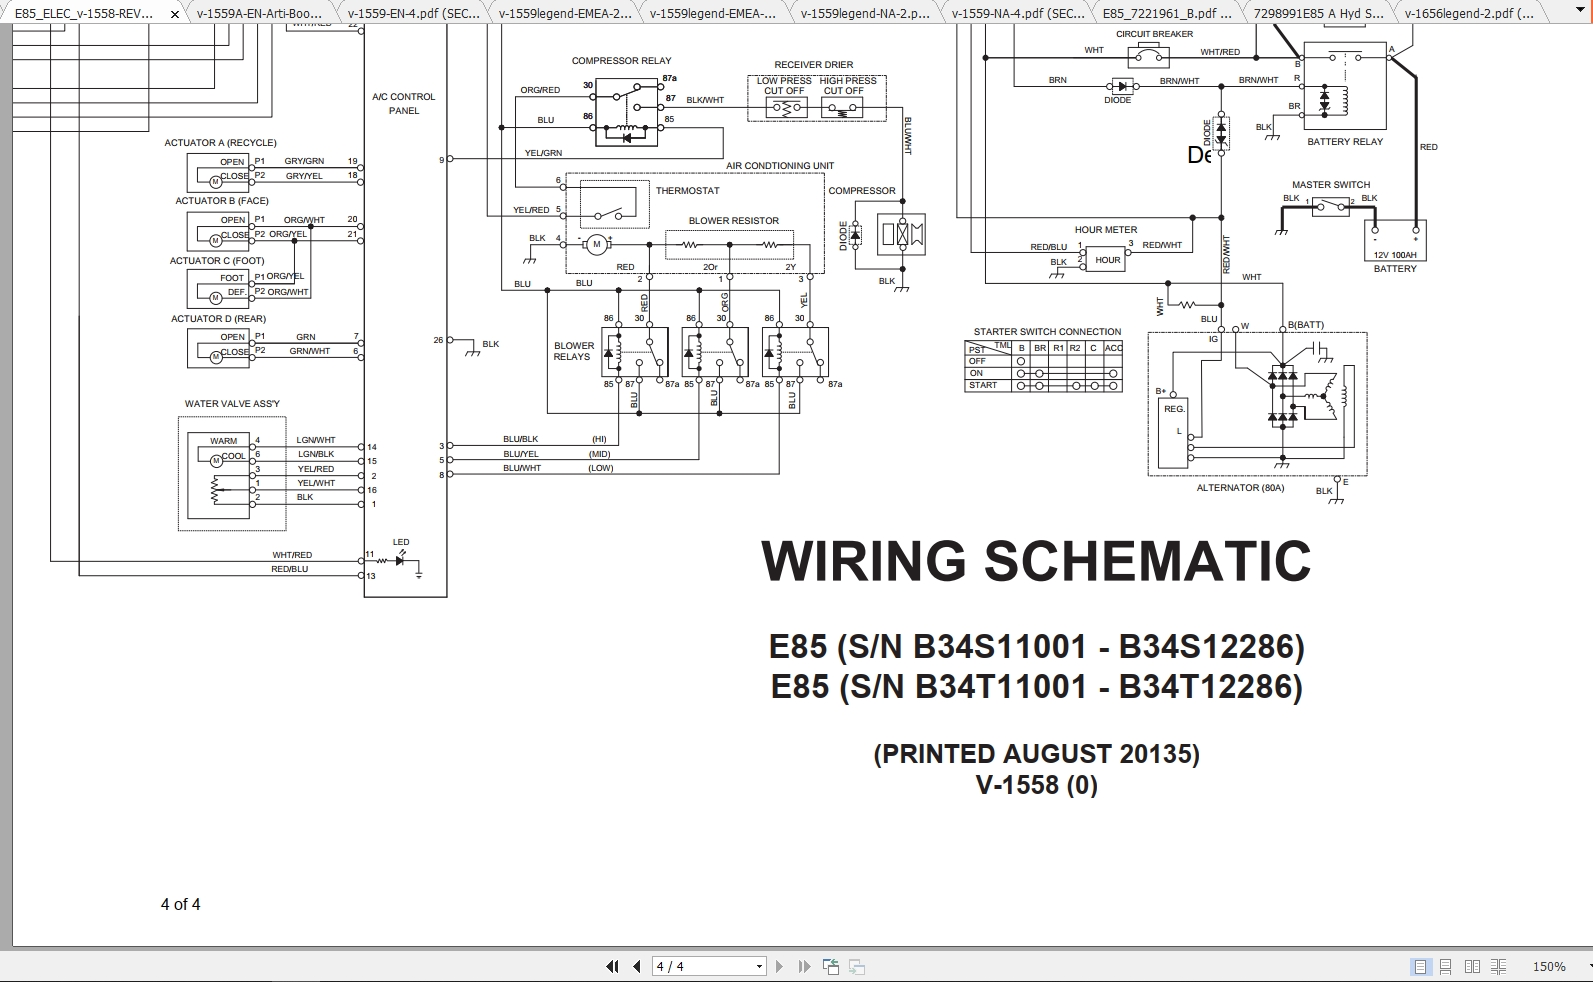 Wiring Diagram Archives - Homepage